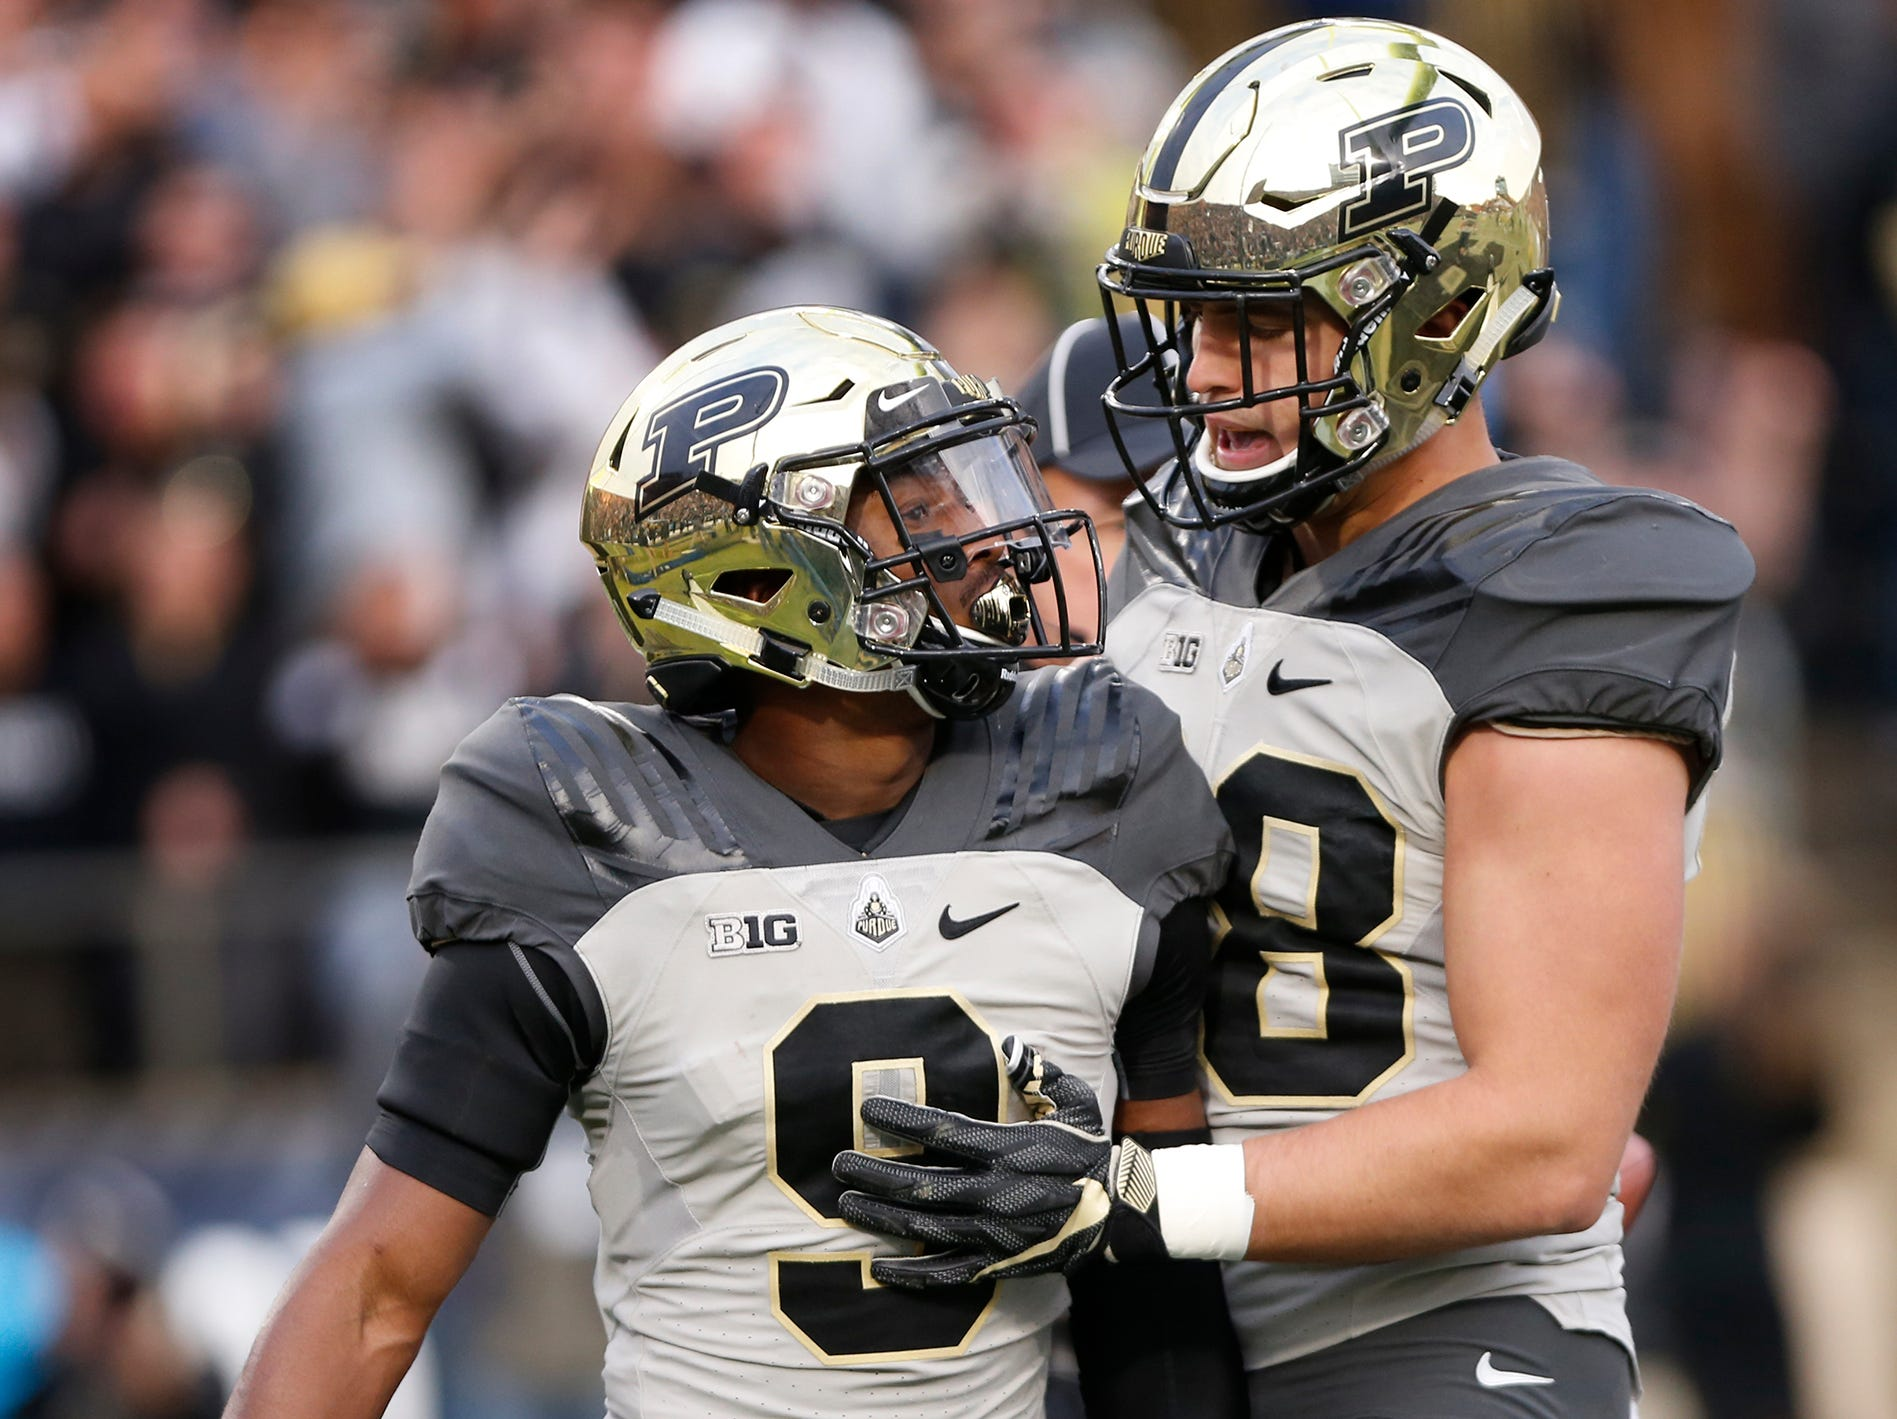 Terry Wright, left, of Purdue celebrates with teammate Cole Herdman after his touchdown reception at 2:26 in the third quarter against Iowa Saturday, November 3, 2018, at Ross-Ade Stadium. Purdue defeated Iowa 38-36.